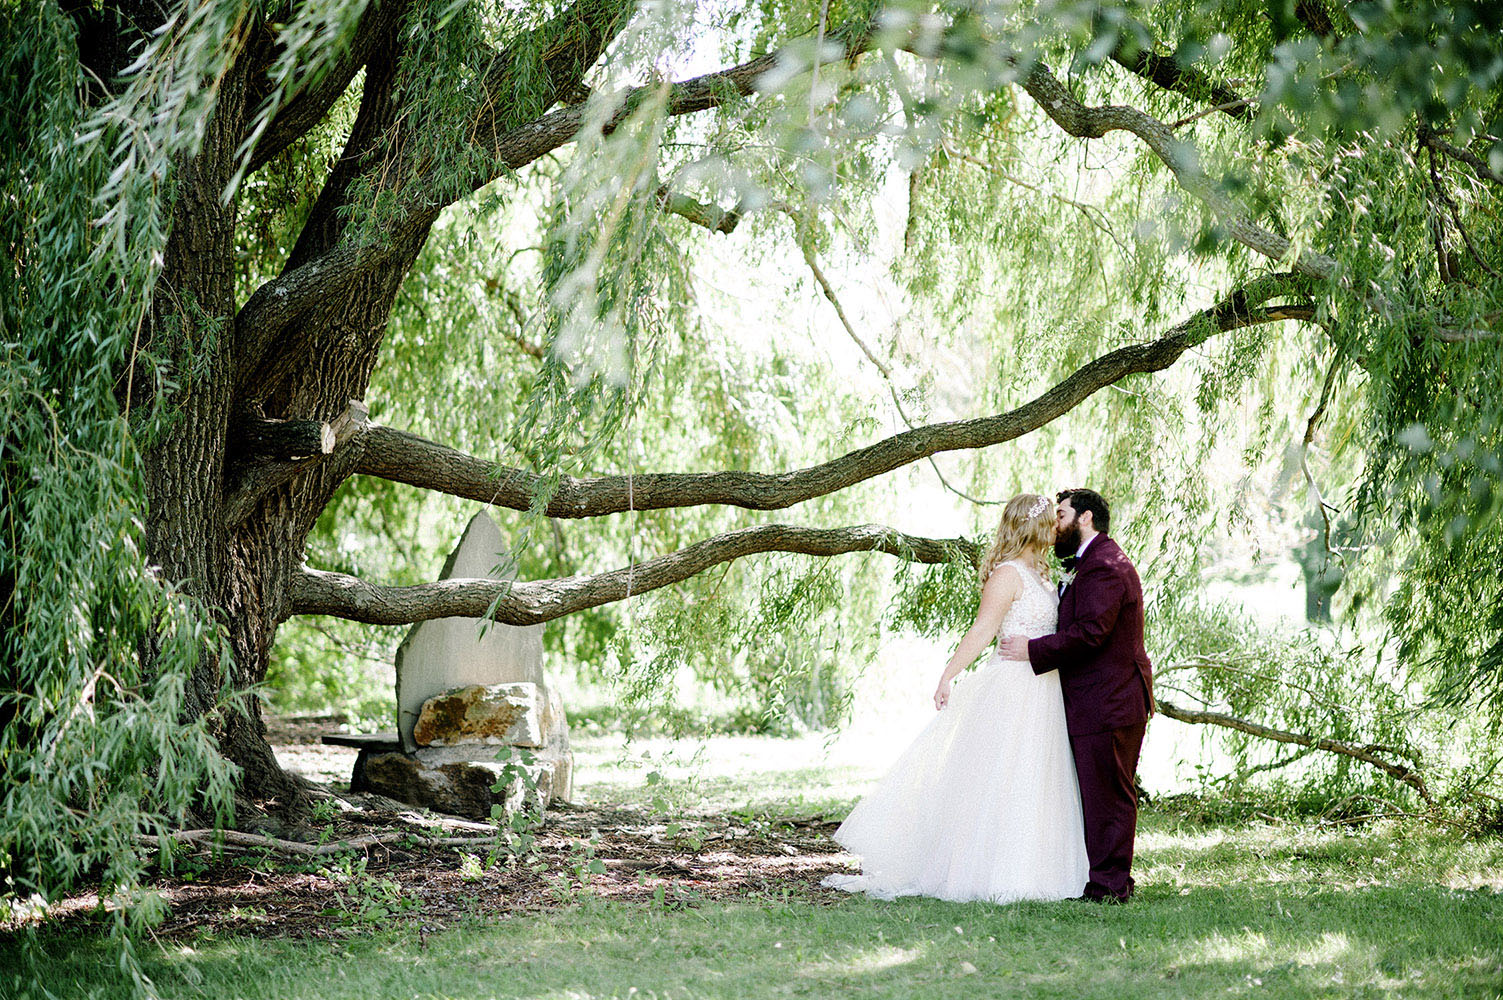 Bride and Groom under willow trees at the Minnesota Landscape Arboretum